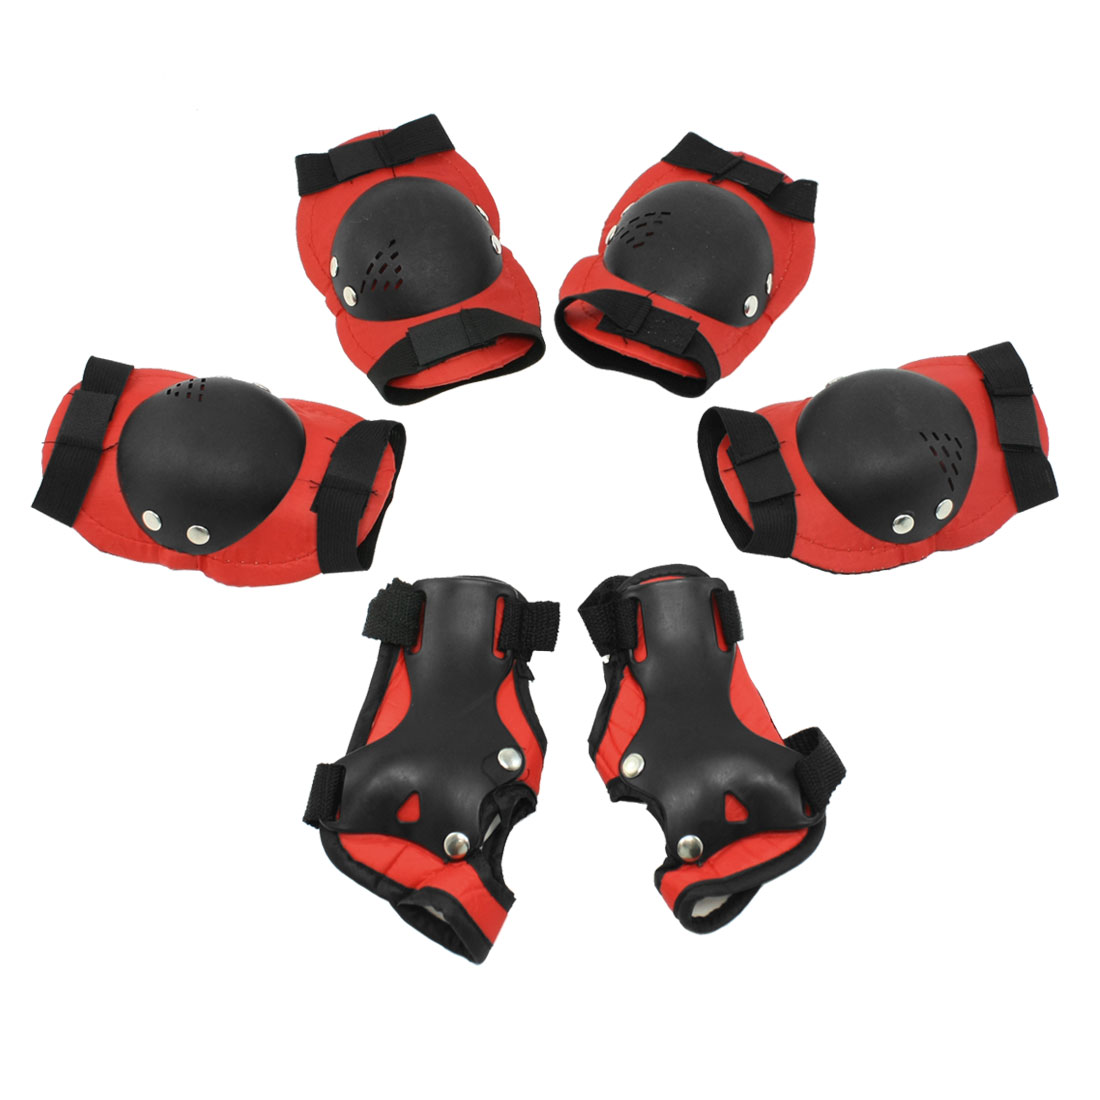 Kid Cycling Skiing Protective Knee Palm Elbow Support Guard Black Red Set 6 in 1